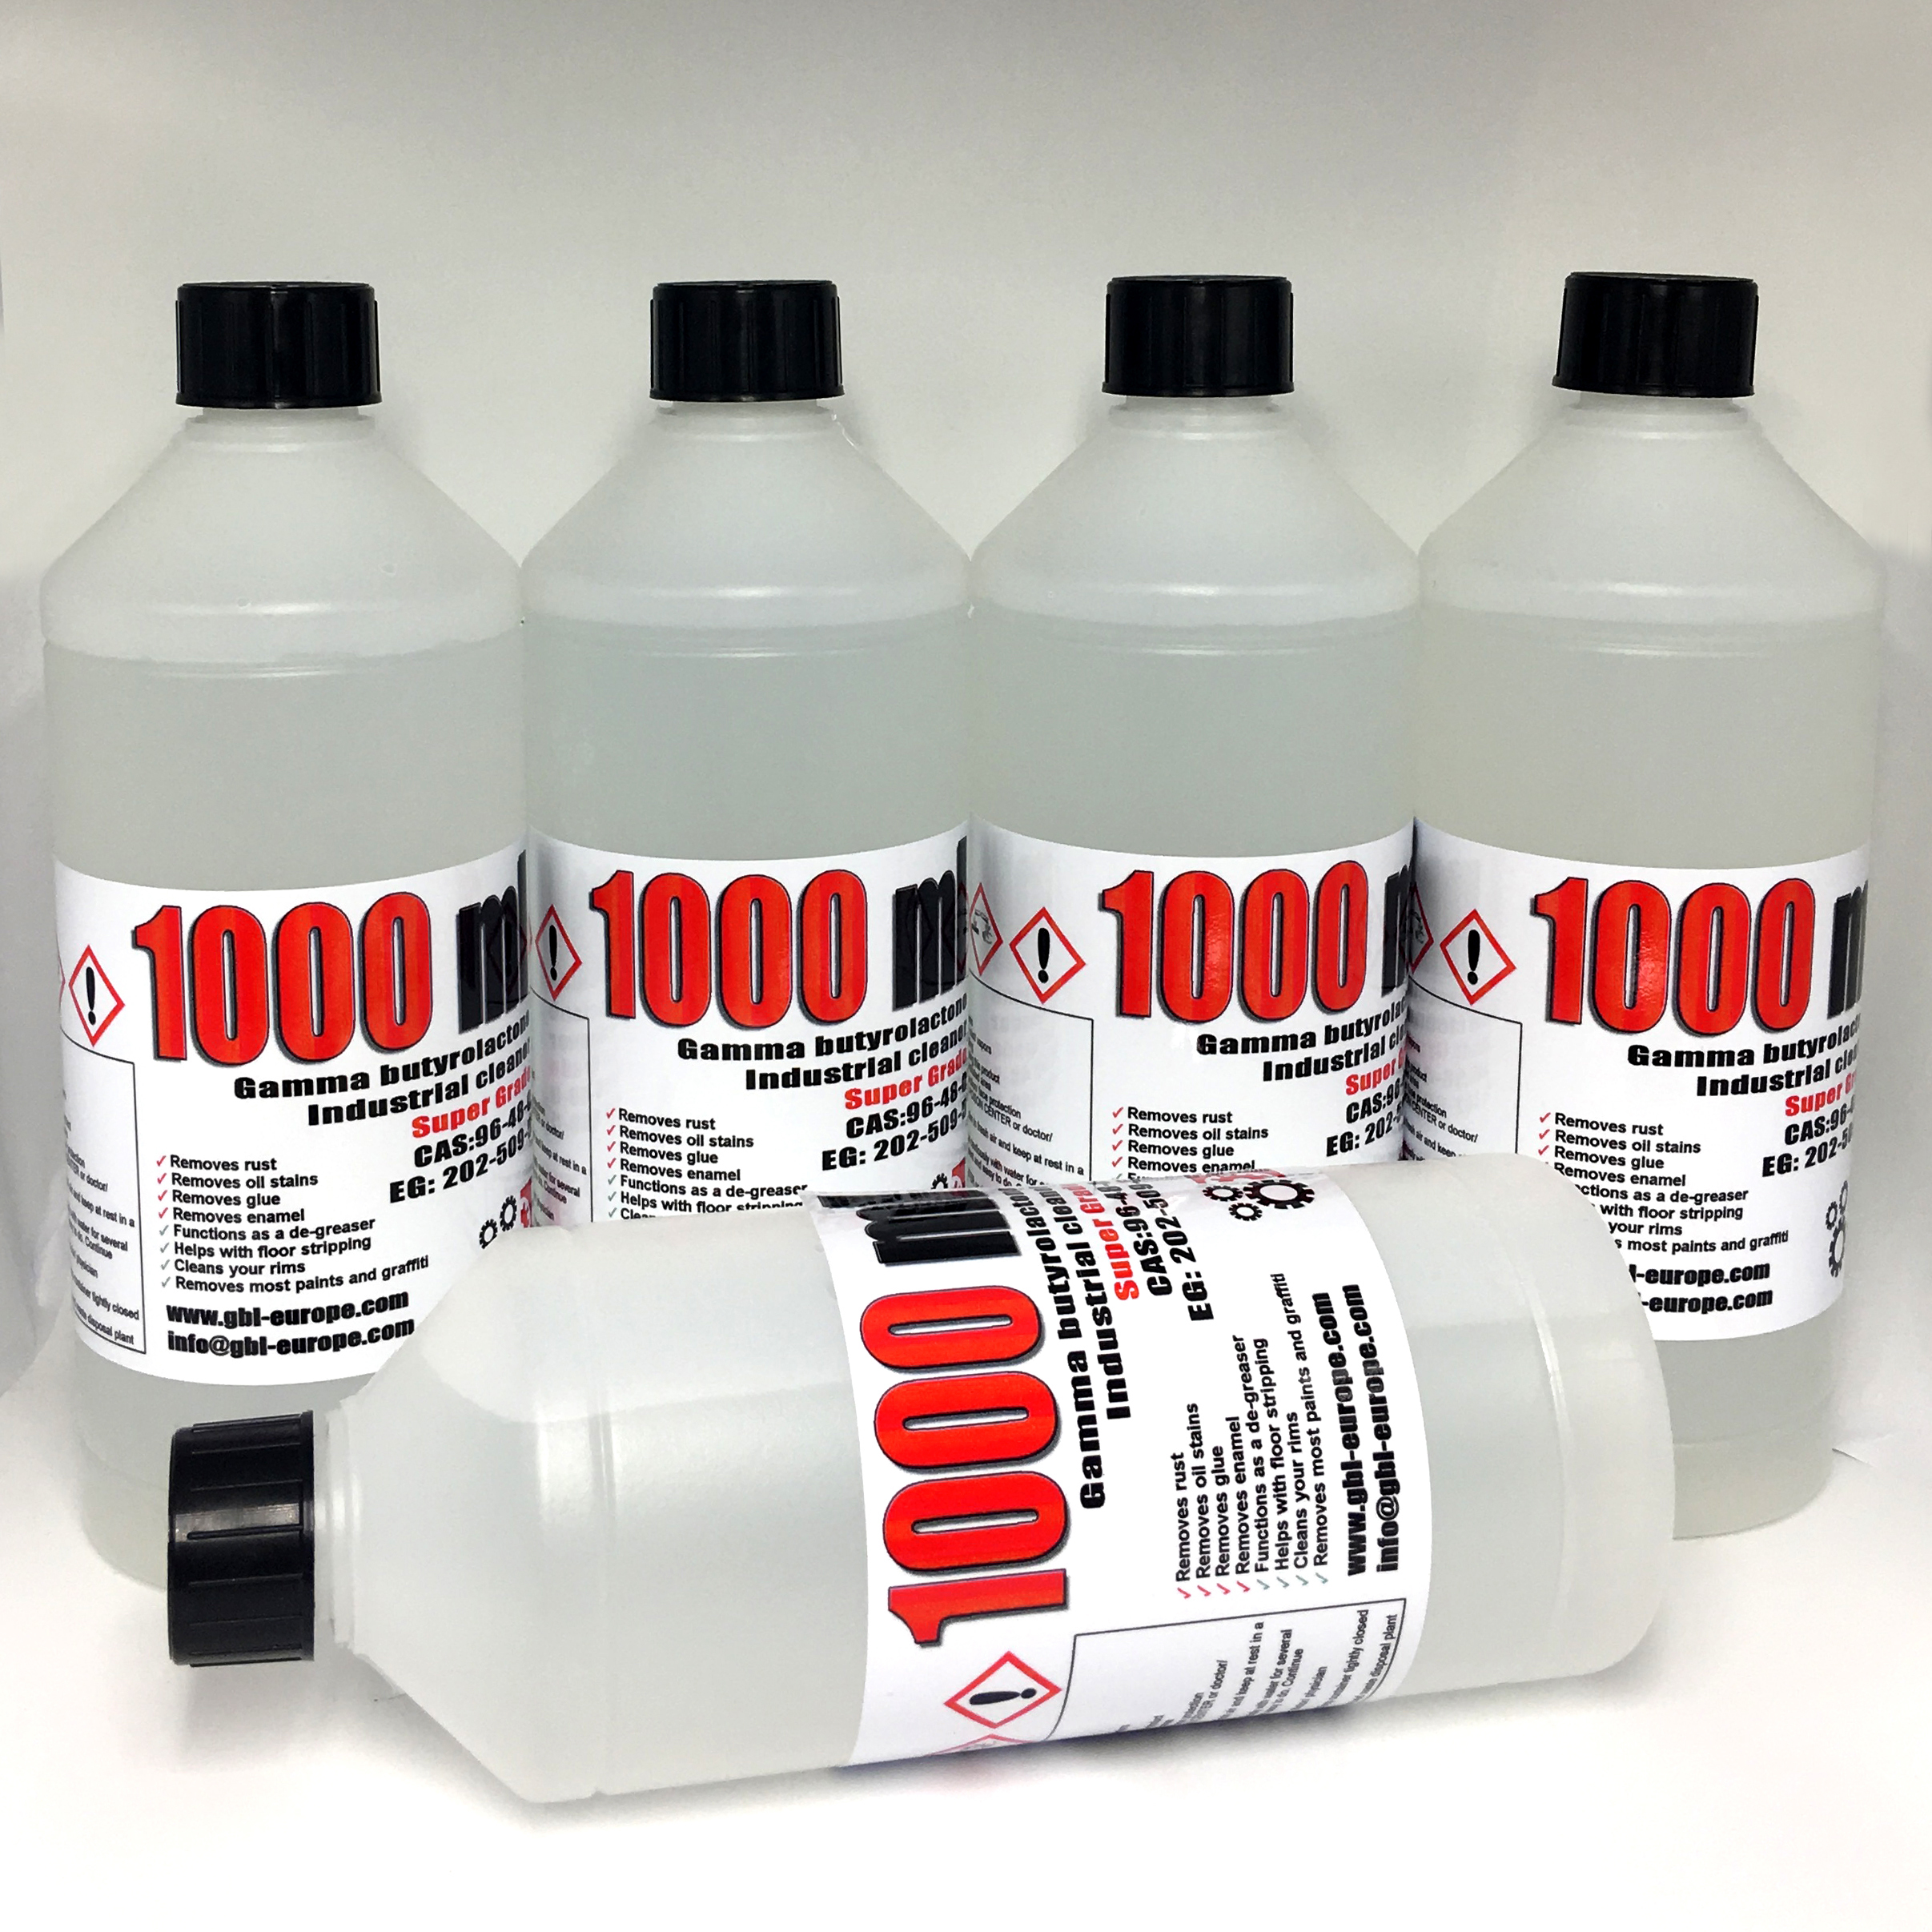 Industrial Cleaner 5.000 ml Super Grade Quality 00220 HS Code 29322020